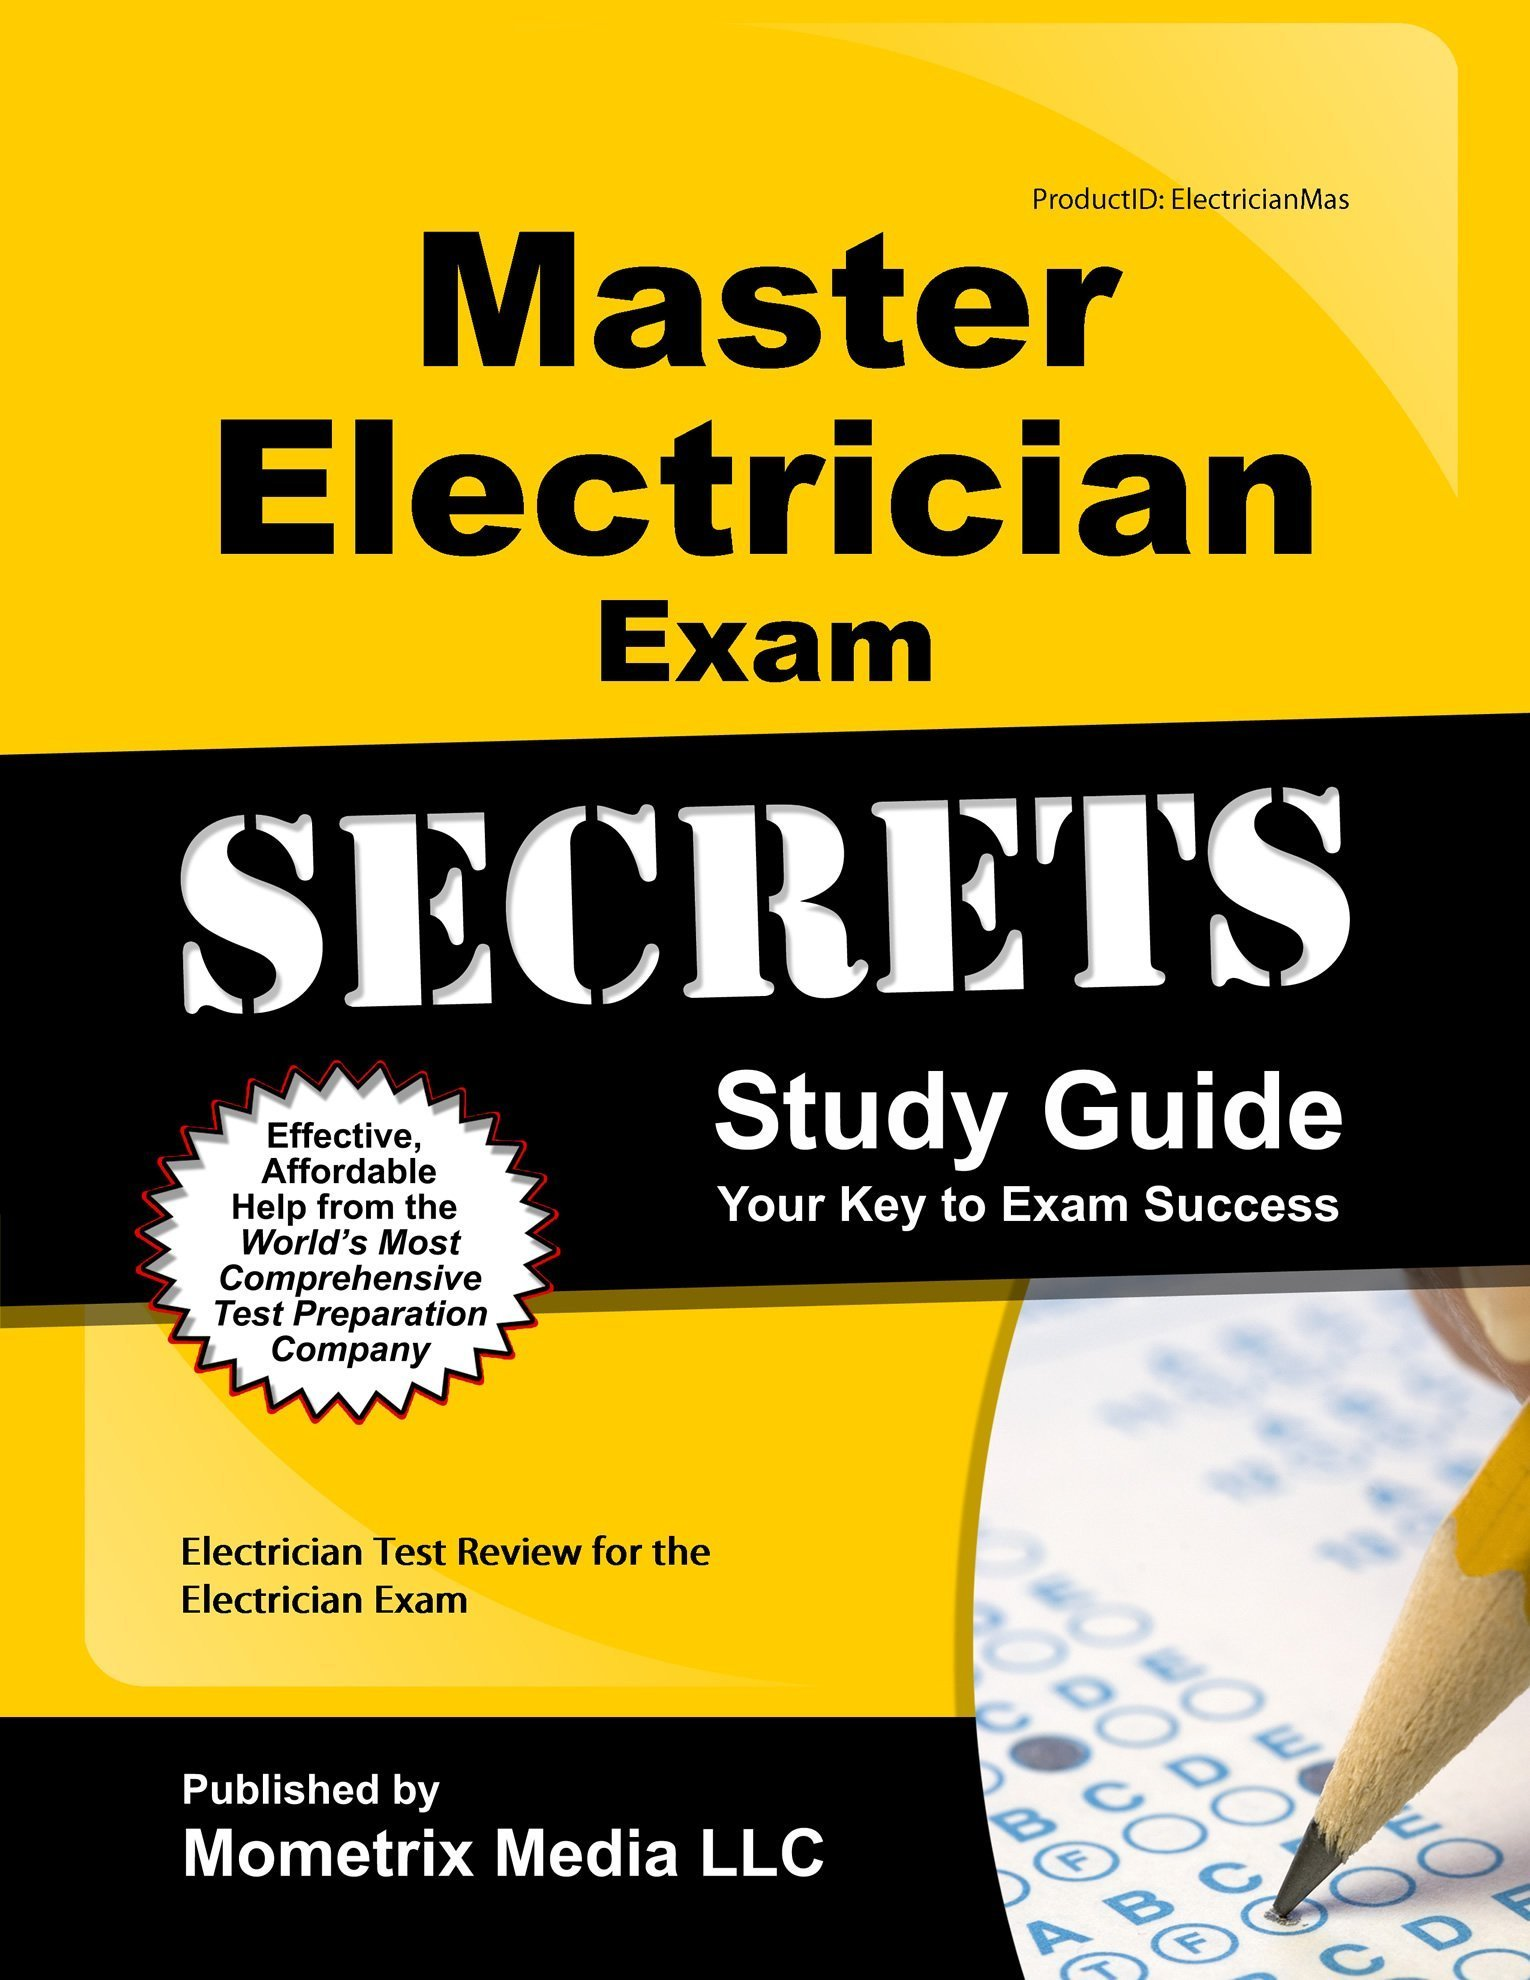 Master Electrician Exam Secrets Study Guide Electrician Test Review